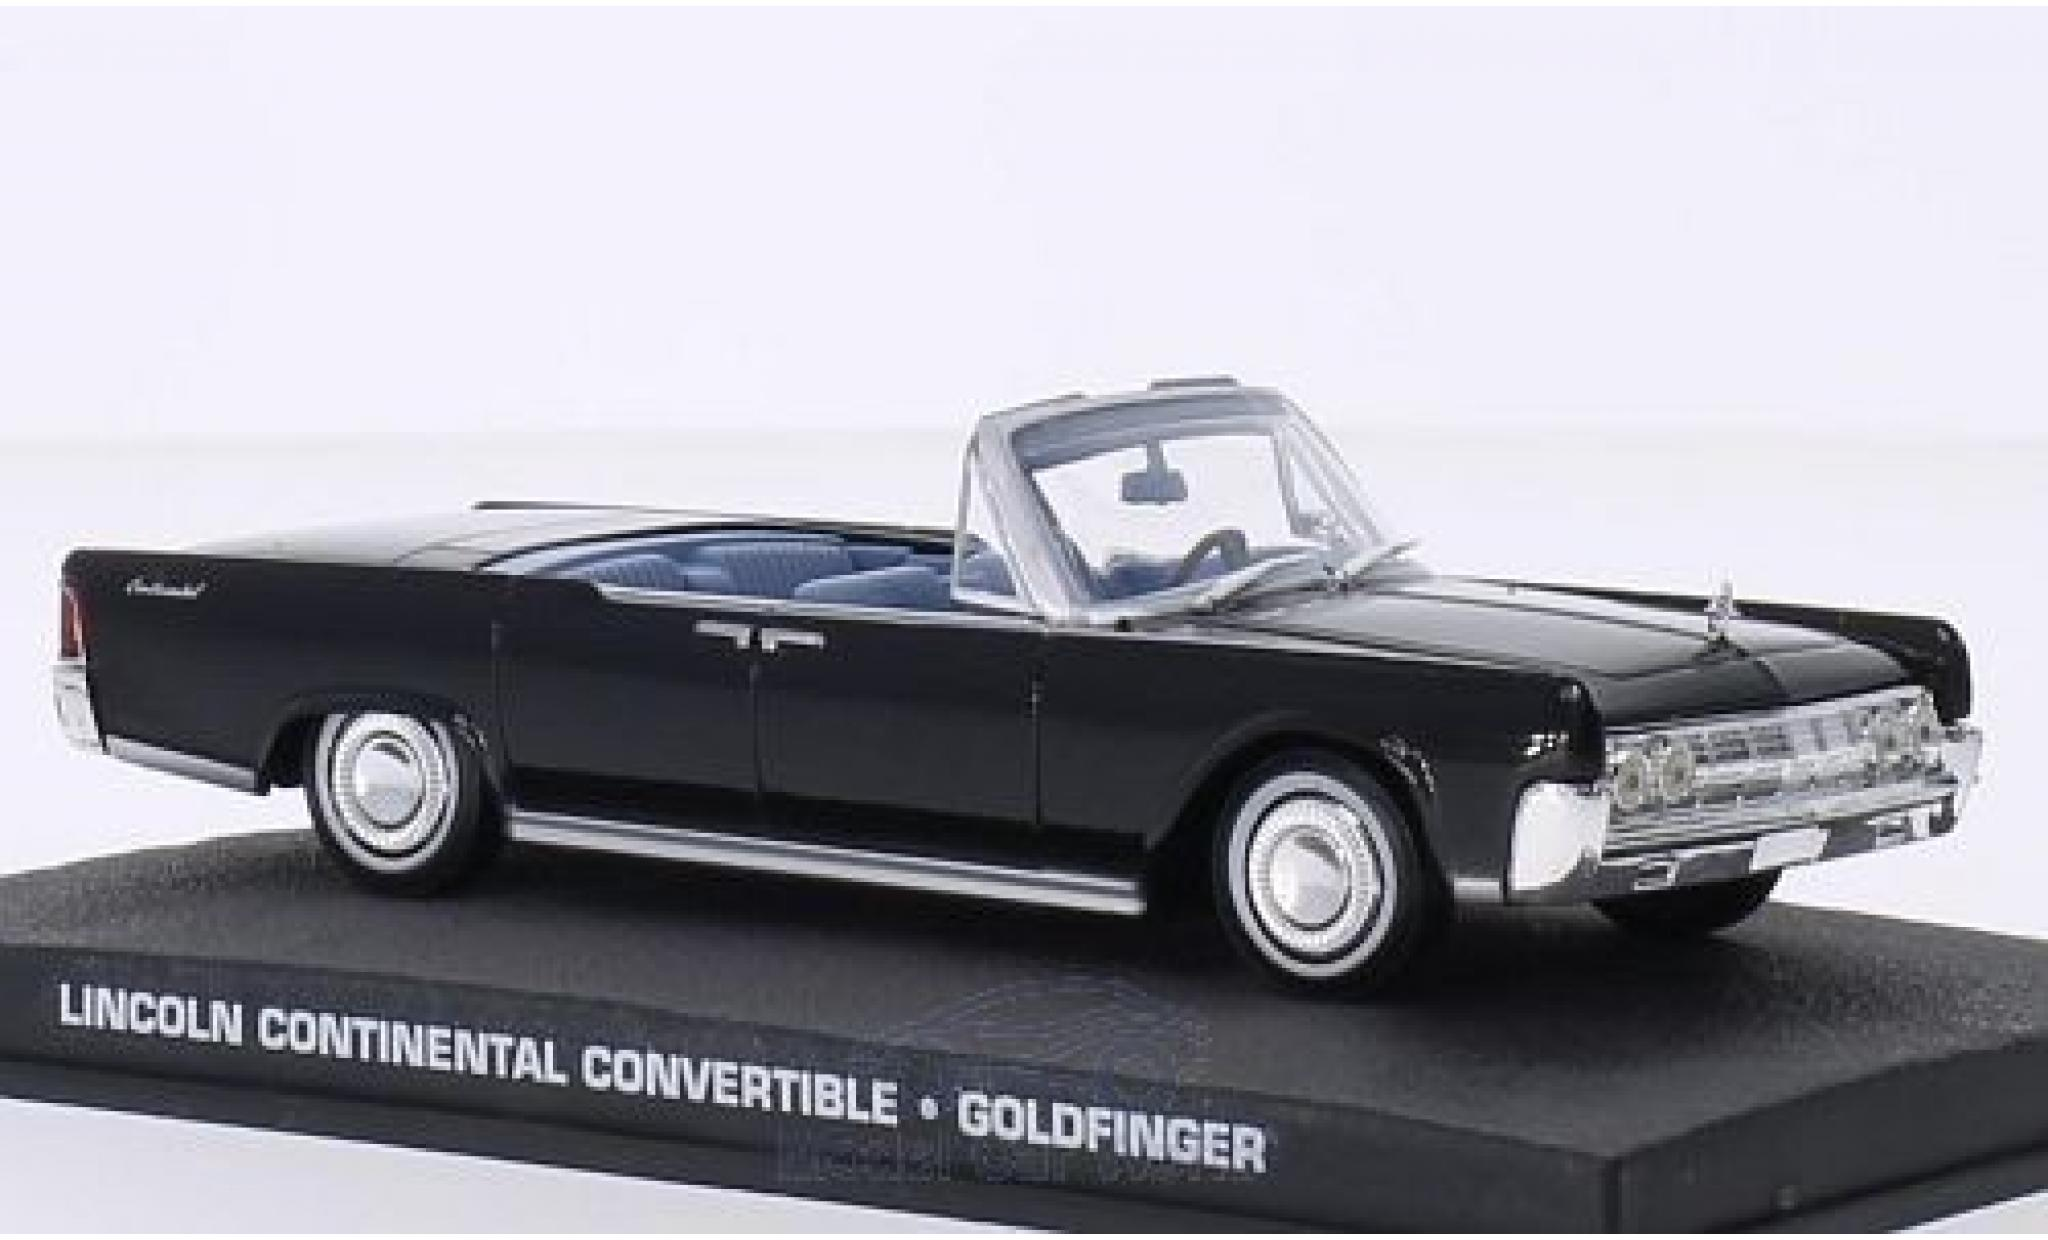 miniature lincoln continental 1  43 specialc 007 convertible james bond 007 goldfinger ohne